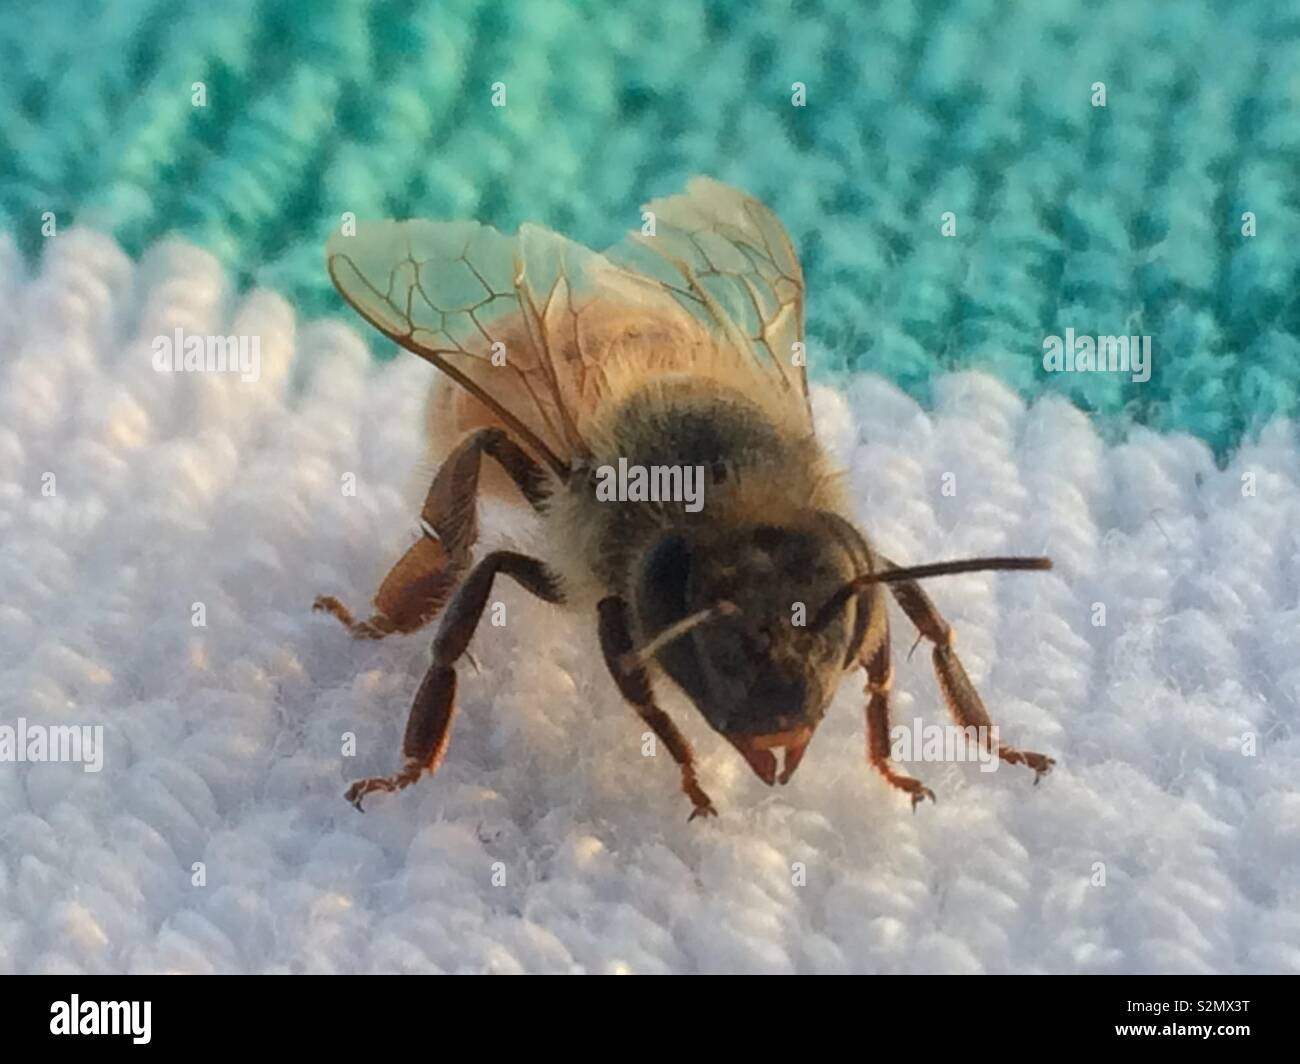 Close-up of a bee Stock Photo